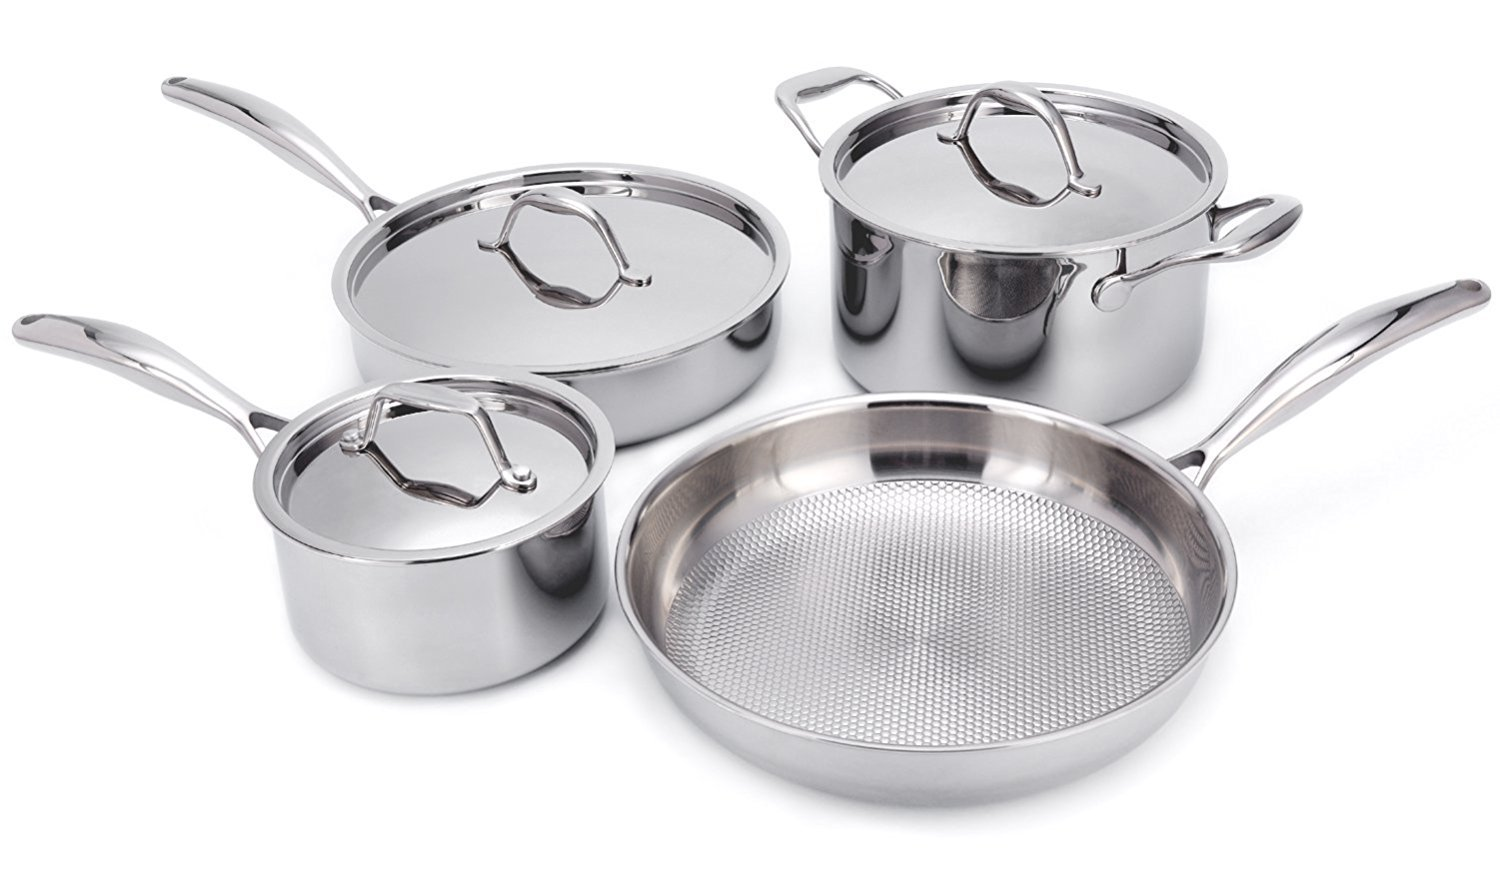 HUFTGOLD Professional Tri-Ply Stainless Steel 7-Piece Cookware Set, with Hive Shape Non-Stick Embossed Design